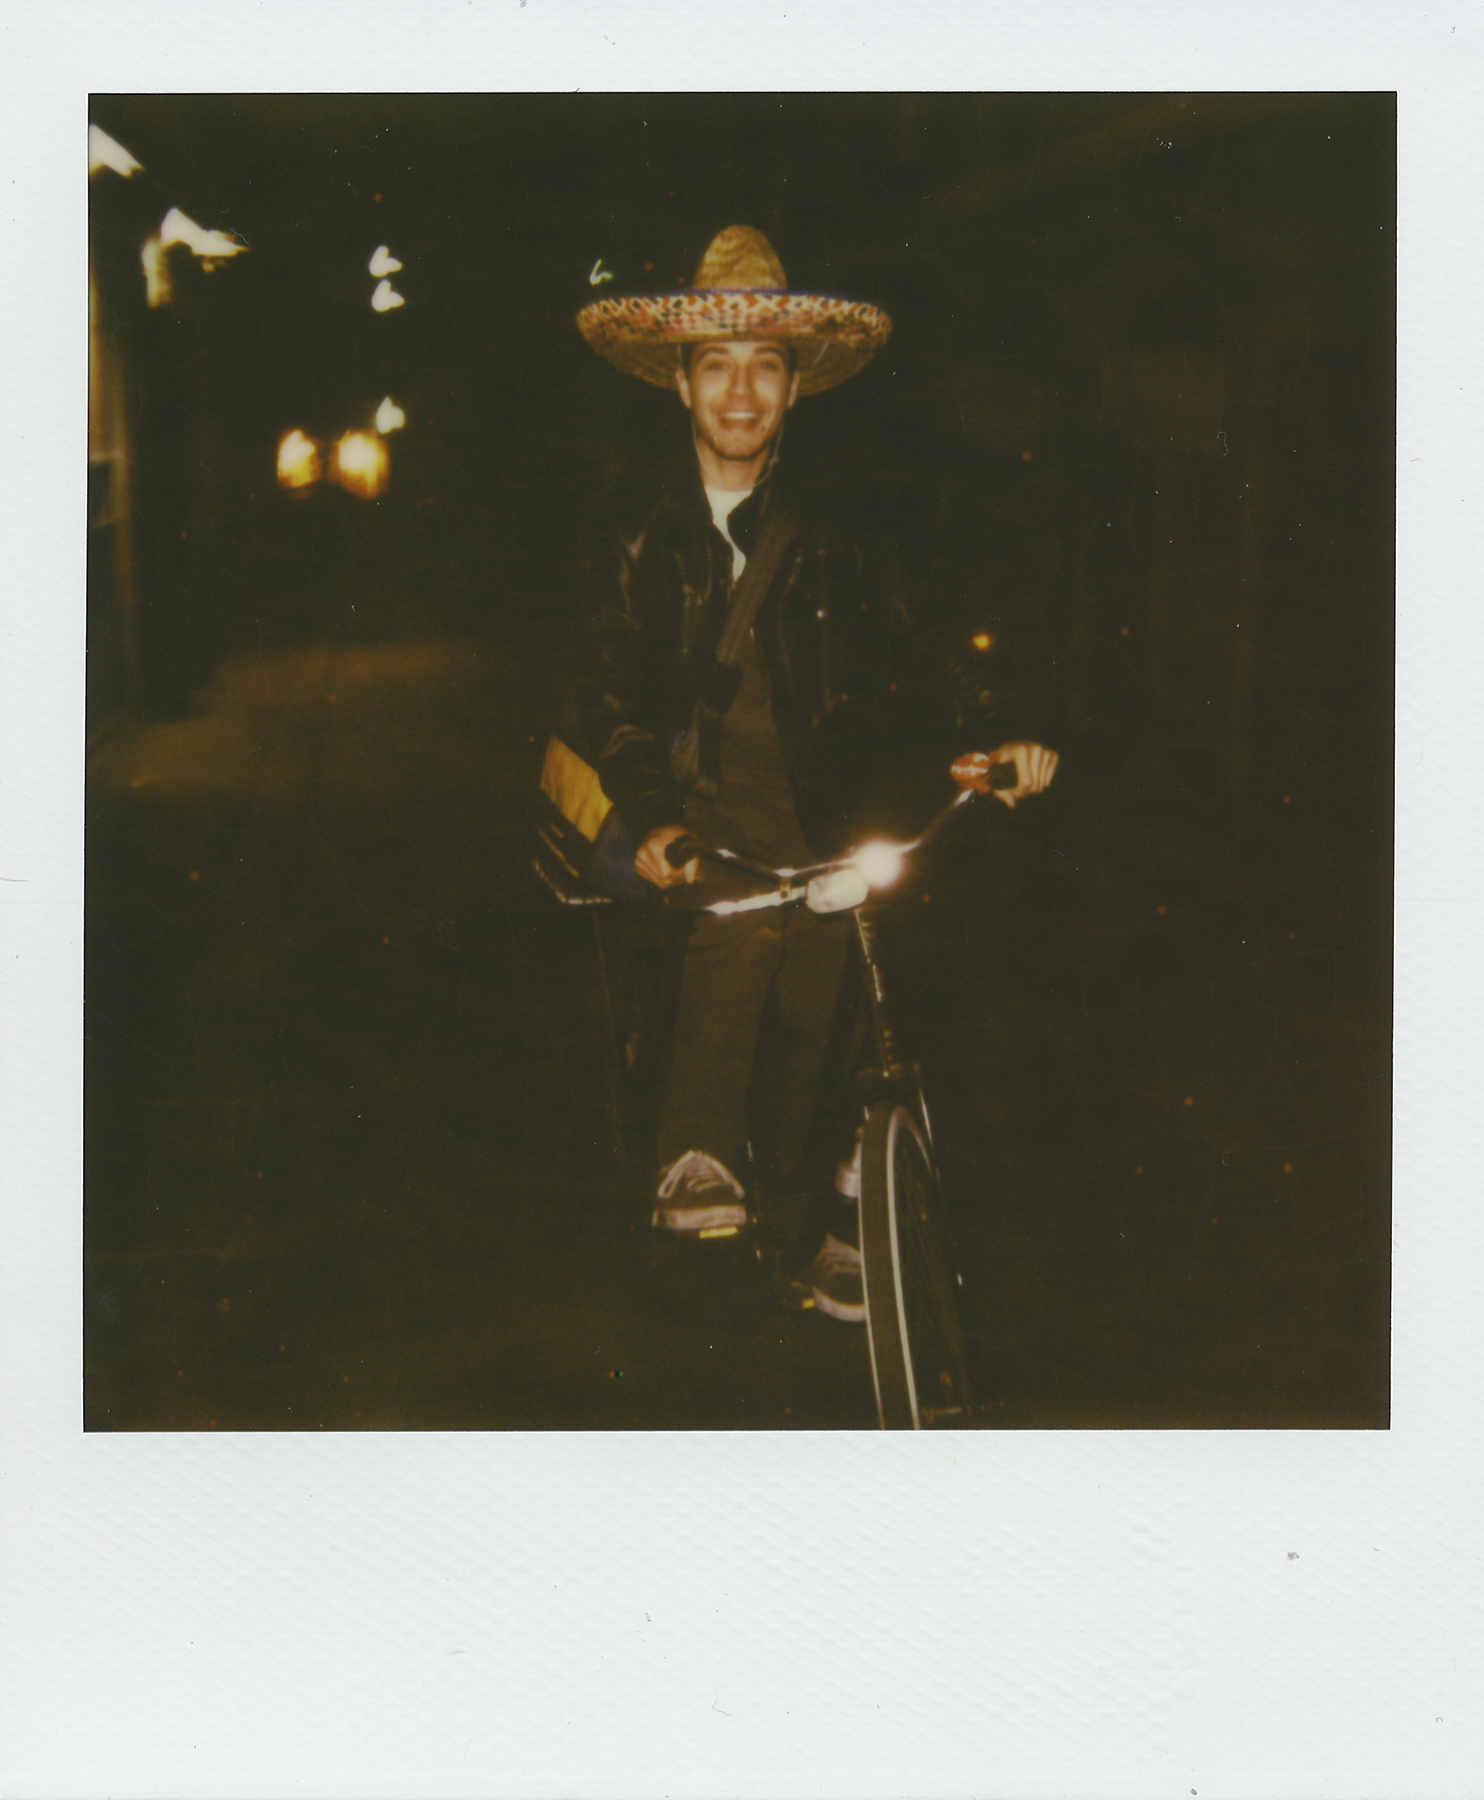 Polaroid 636 | Impossible Project PX680 | Max Glatzhofer